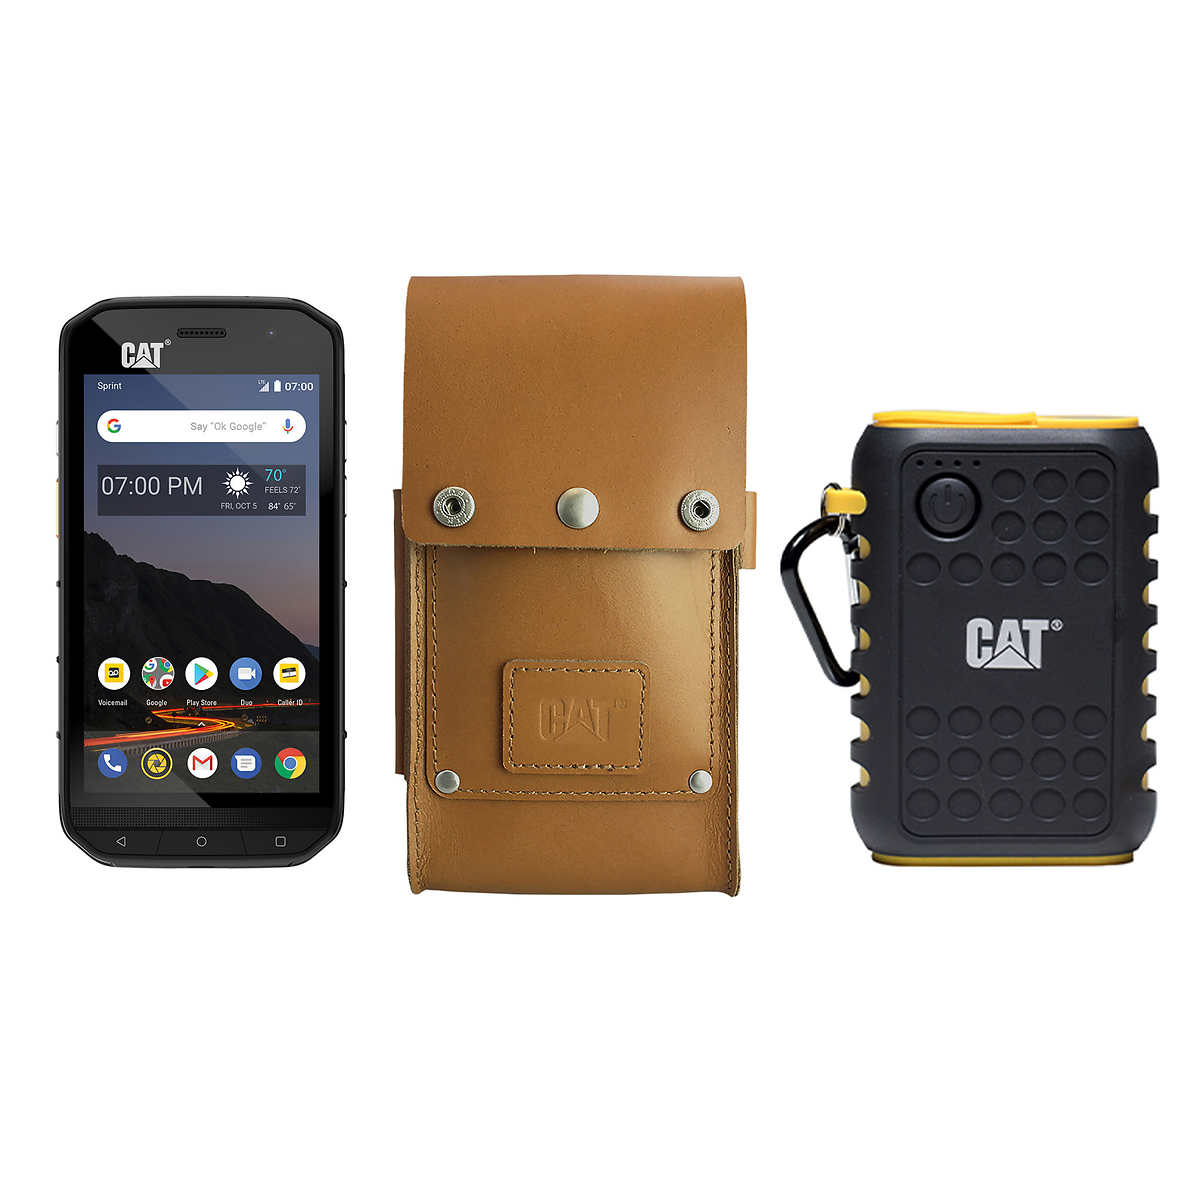 CAT Rugged S48C Unlocked Smartphone Bundle